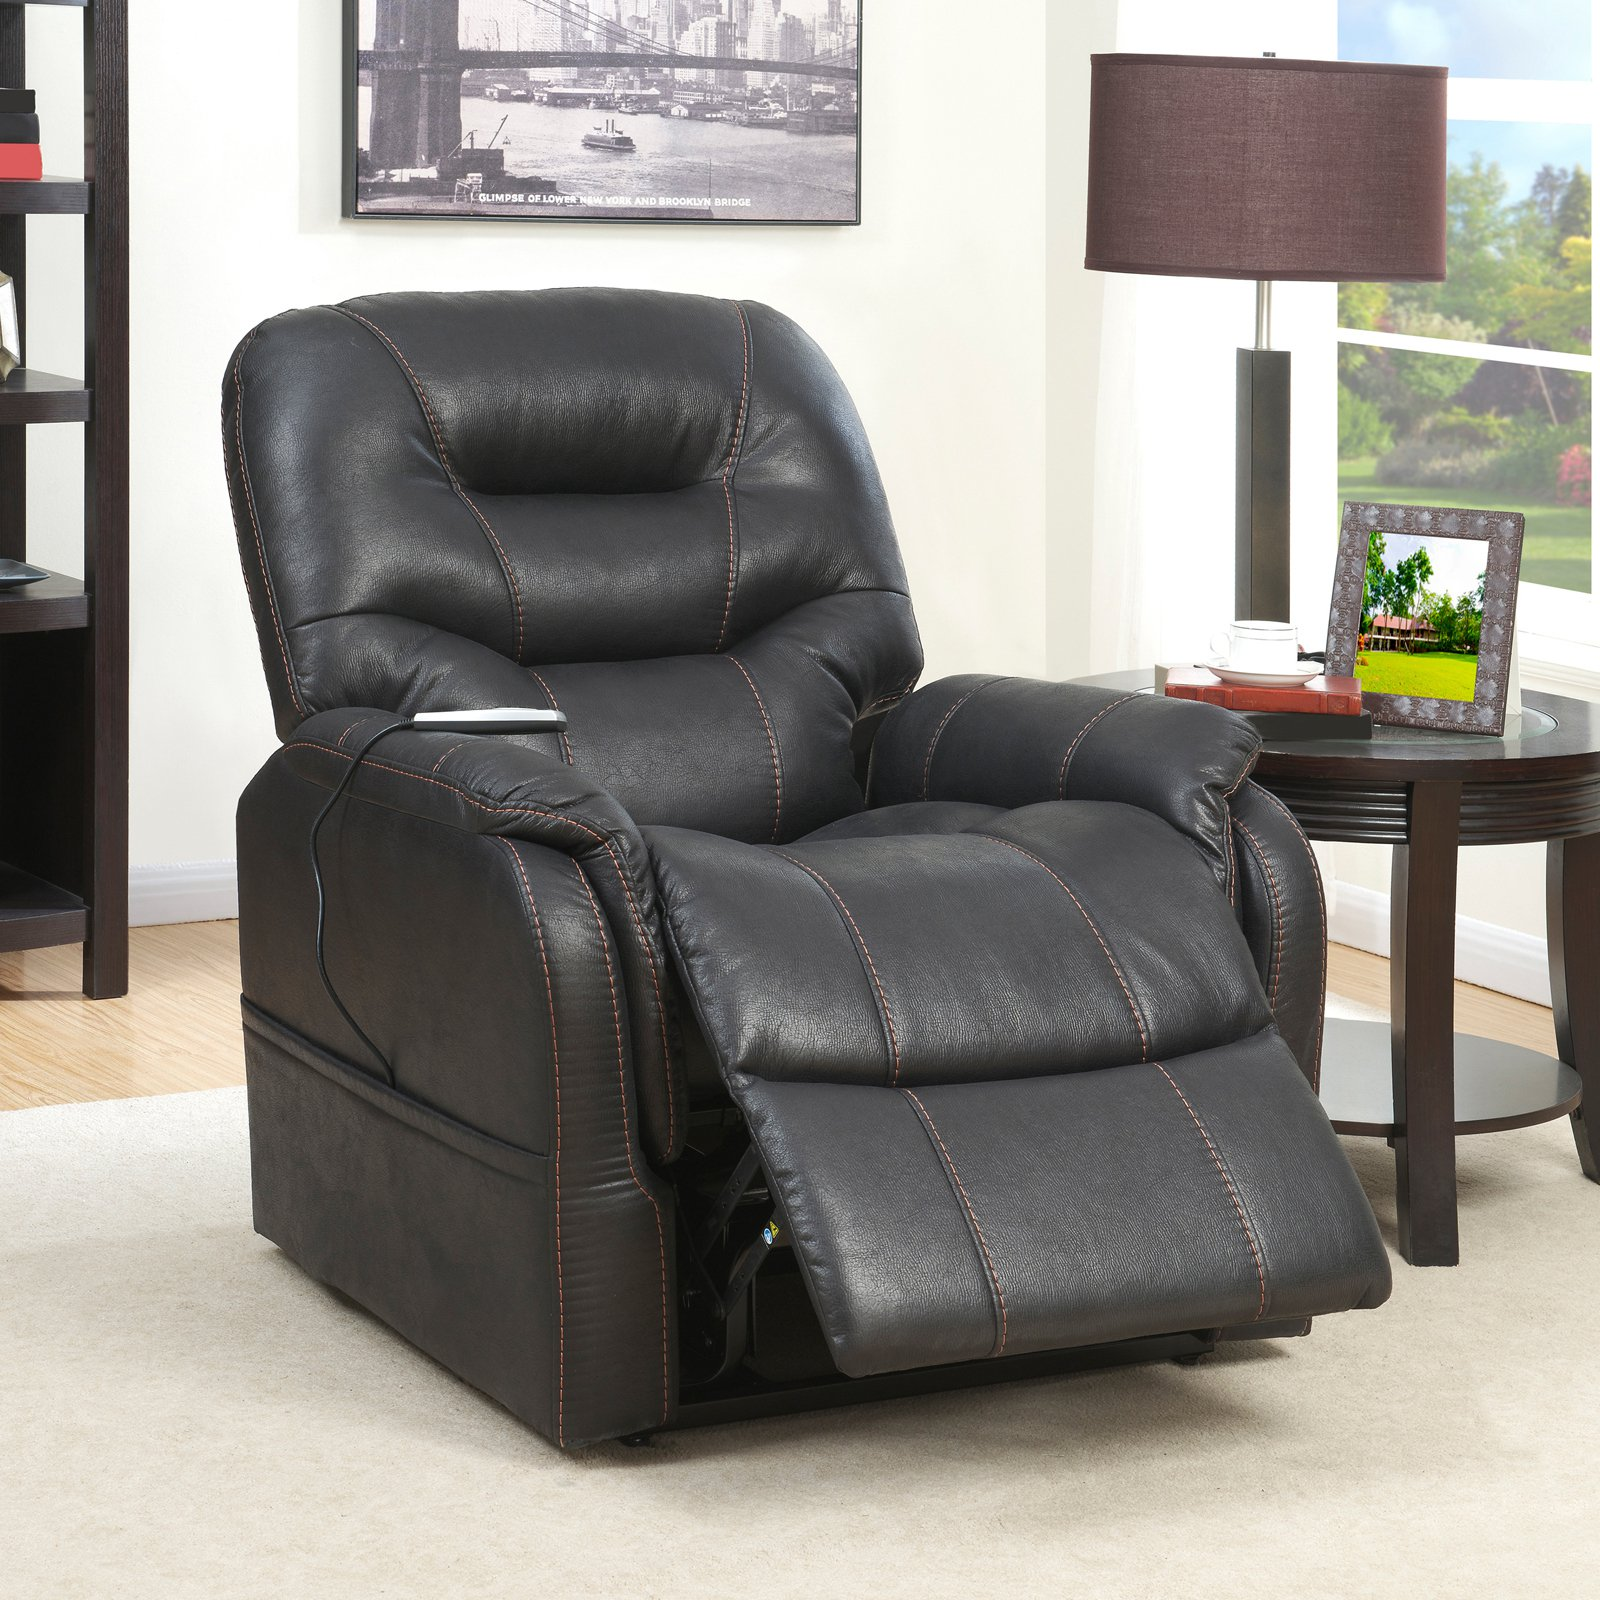 golden lift chair. Prime Resources Heat And Massaging Lift Chair In Badlands Eclipse Golden